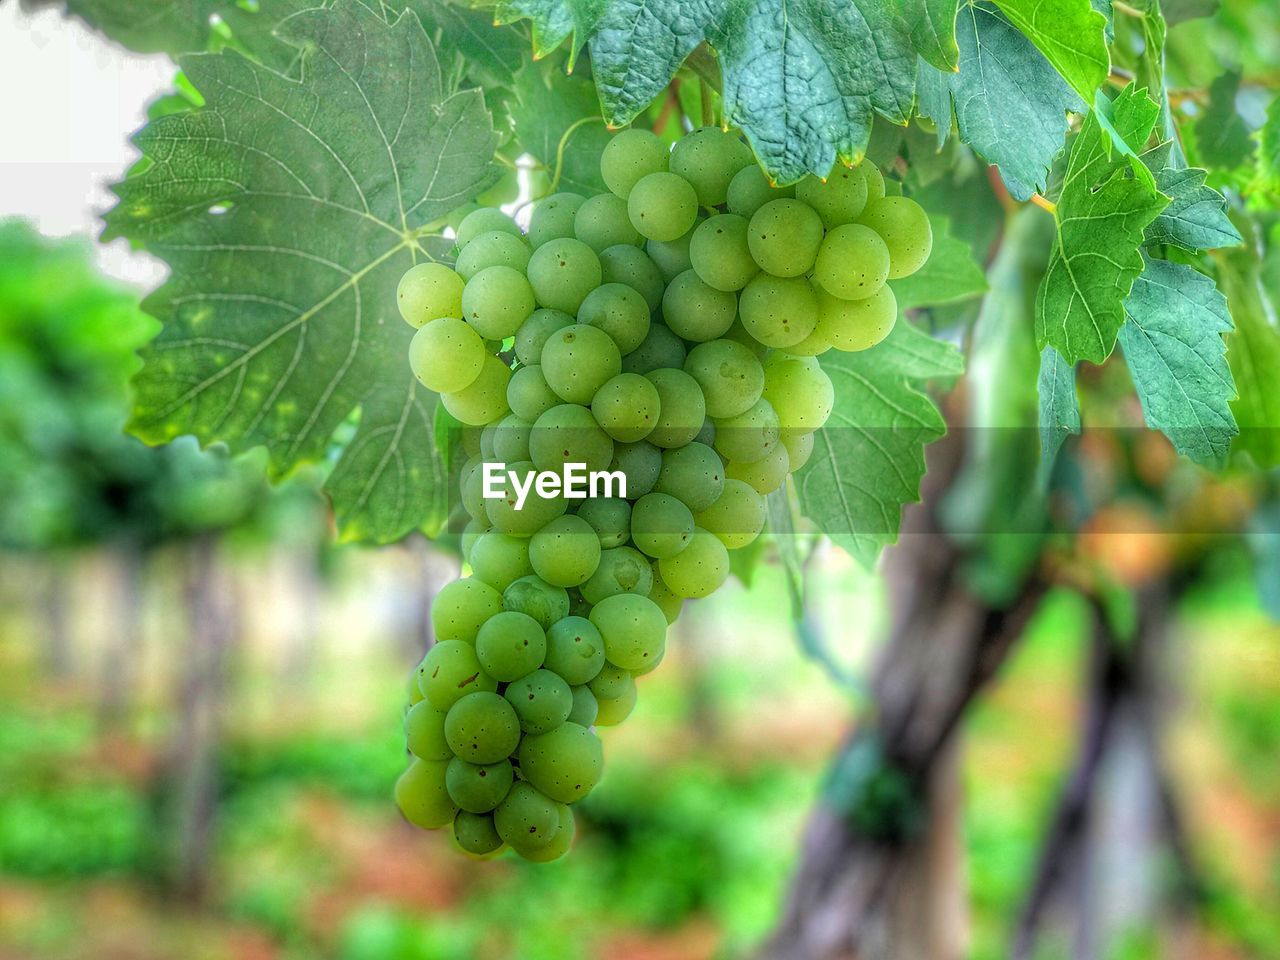 green color, growth, food and drink, food, healthy eating, fruit, plant, leaf, plant part, close-up, nature, no people, day, beauty in nature, freshness, focus on foreground, tree, vine, bunch, grape, outdoors, winemaking, plantation